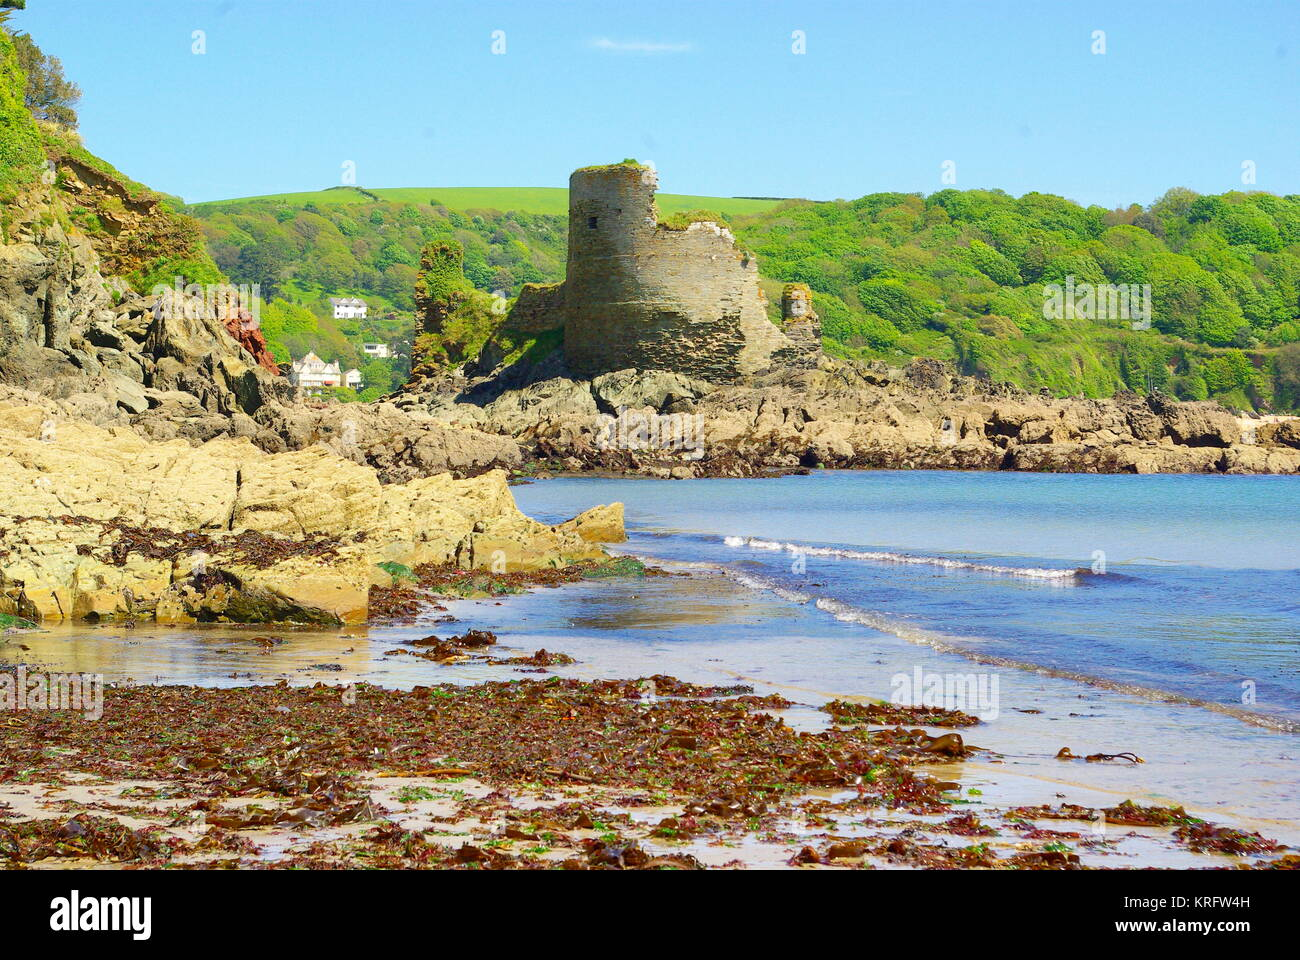 Salcombe Castle or Fort Charles, near the North Sands, Salcombe, Devon.      Date: 2014 - Stock Image